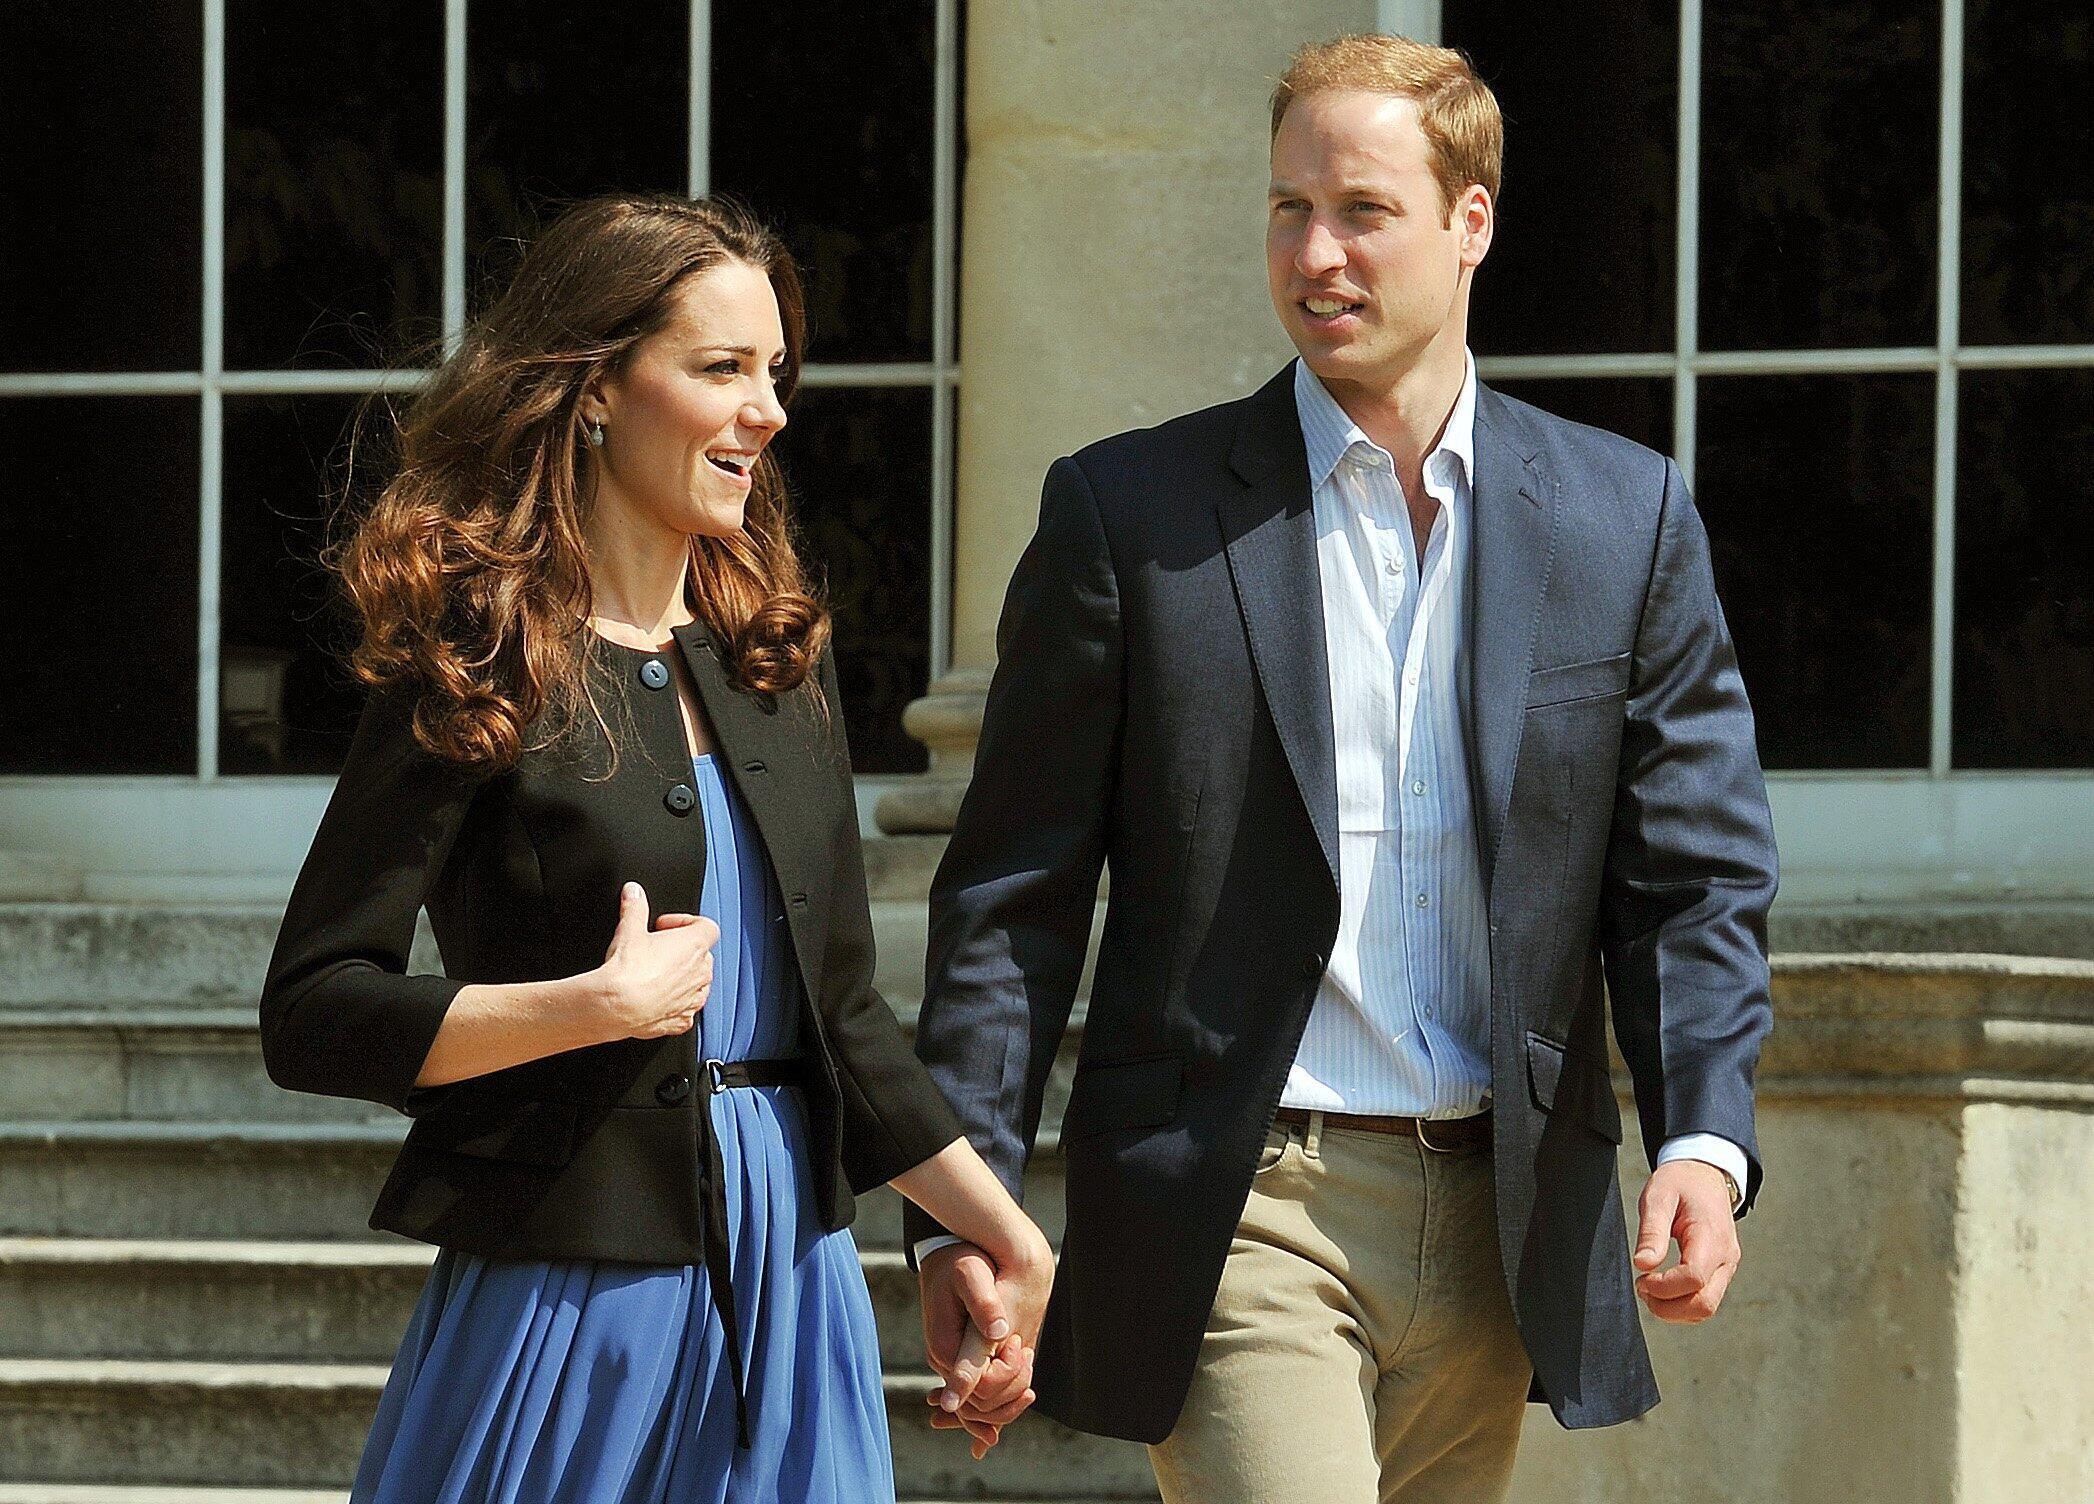 The Duke and Duchess of Cambridge, also known as Kate and William, are suing a French magazine for publishing nude photos of the couple